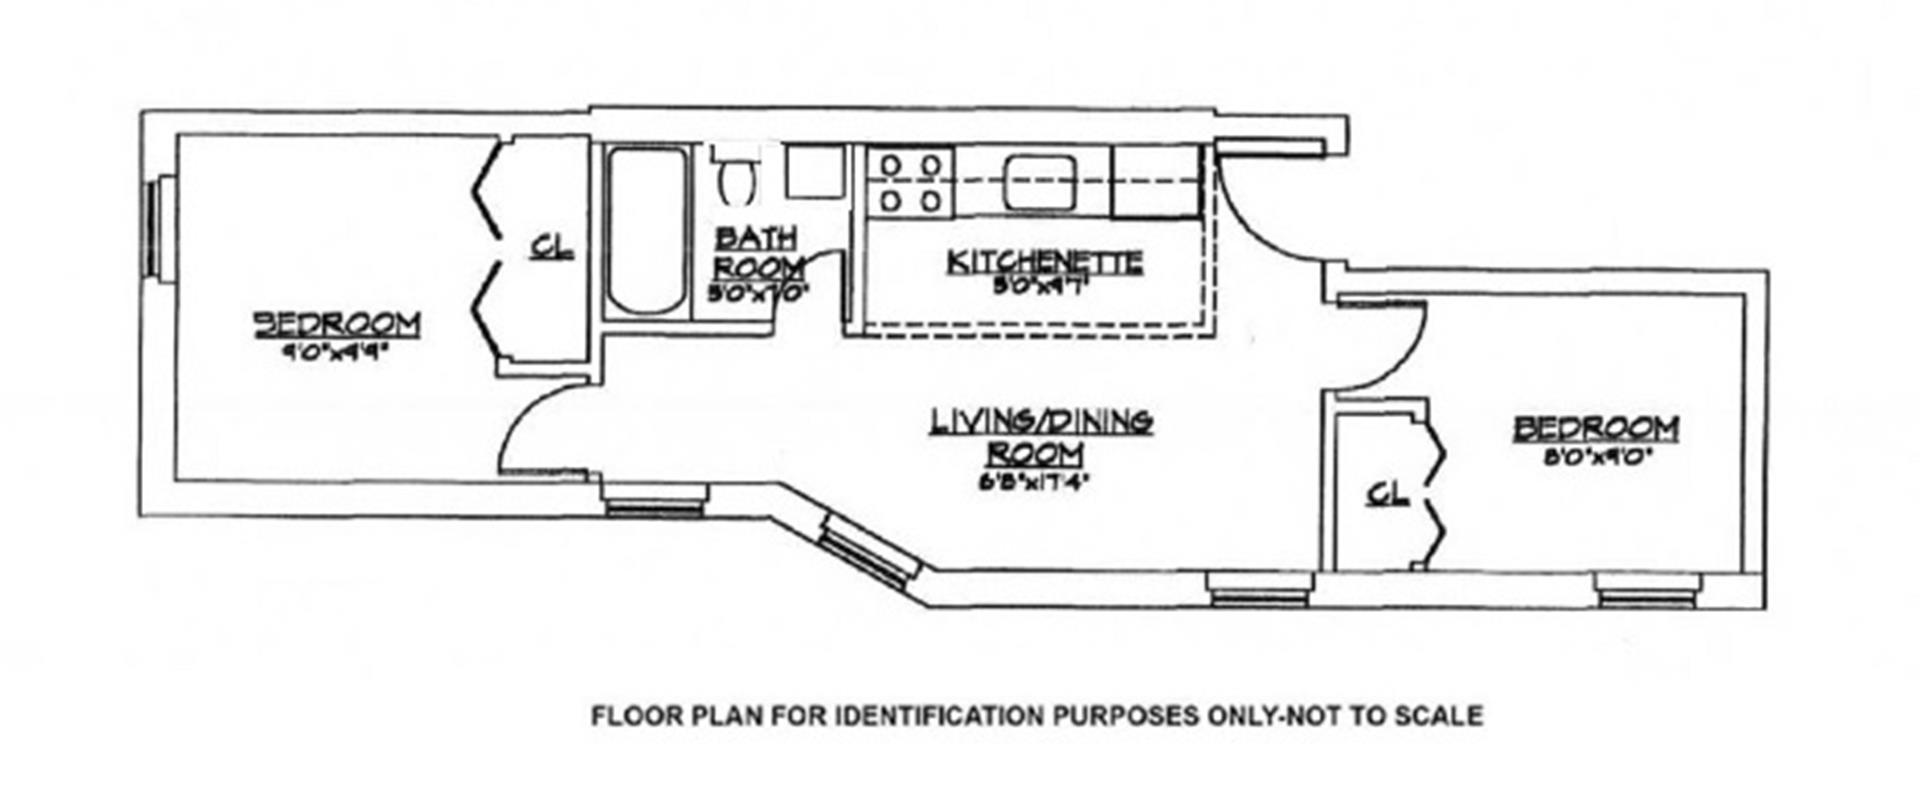 Floor plan of 1062 Bergen St, 4C - Crown Heights, New York